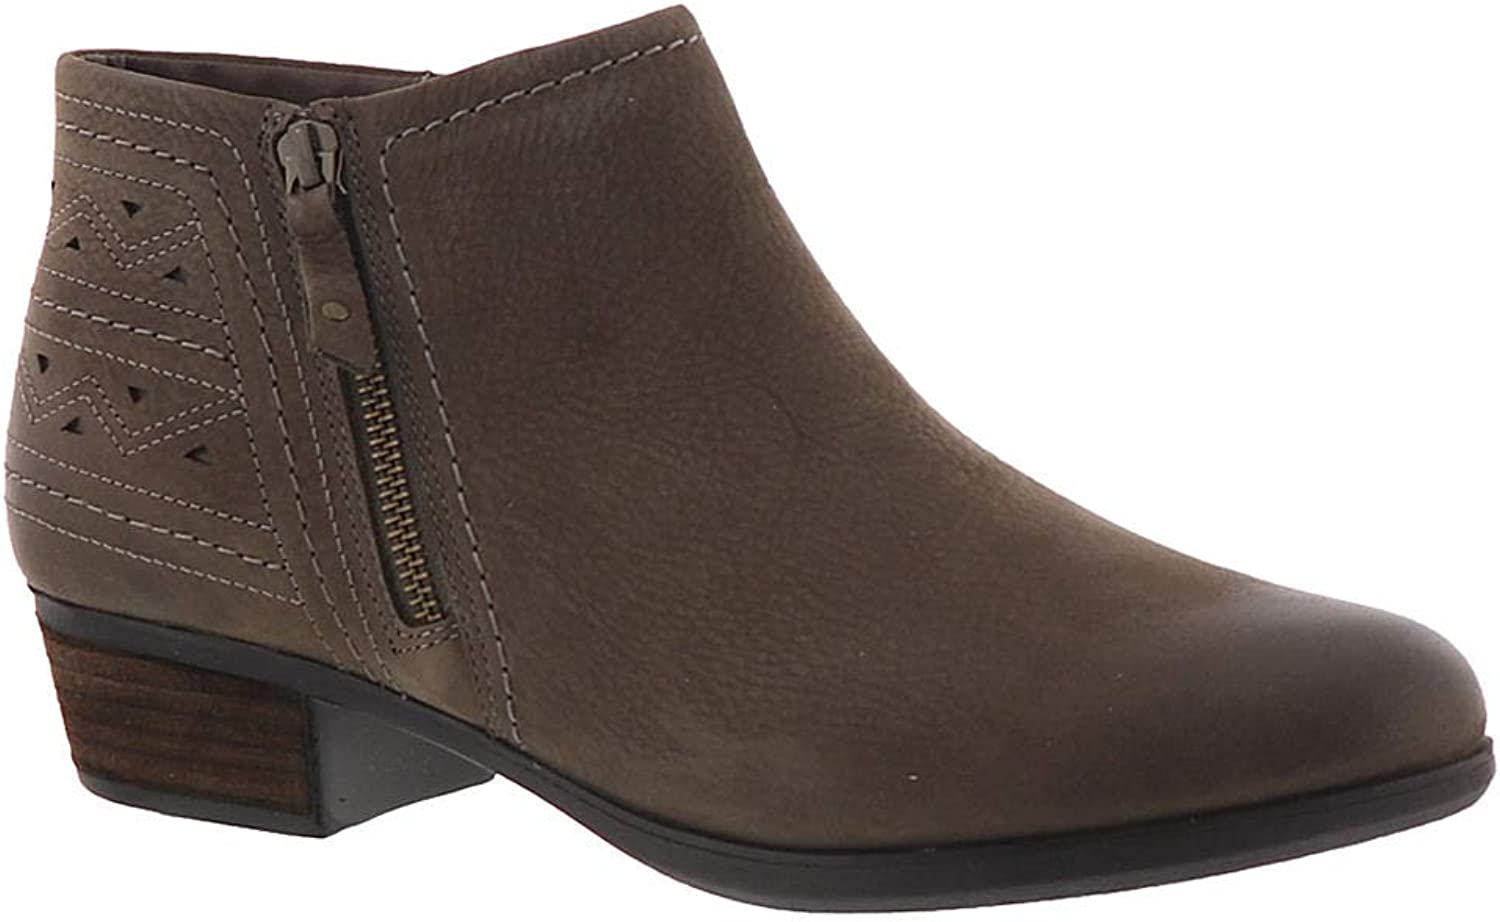 Cobb Hill Women's Oliana Ankle Boot